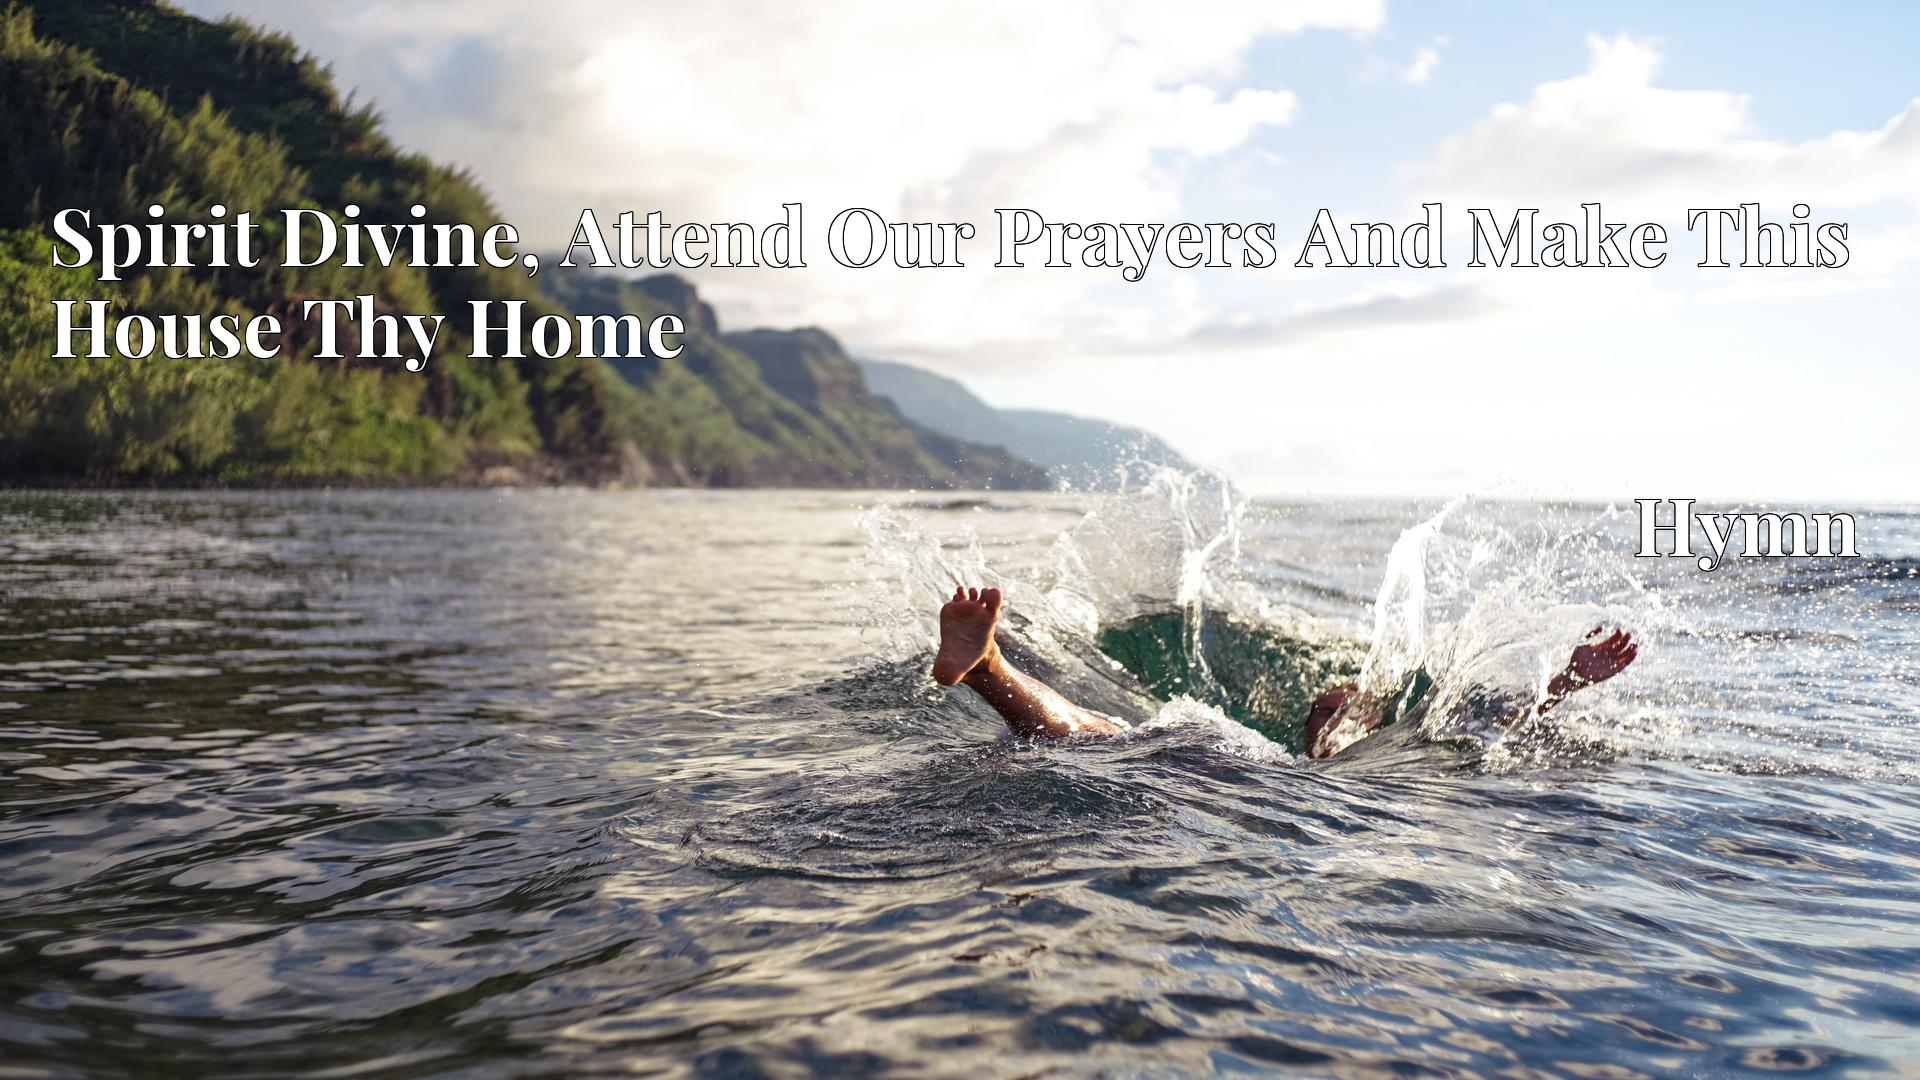 Spirit Divine, Attend Our Prayers And Make This House Thy Home - Hymn